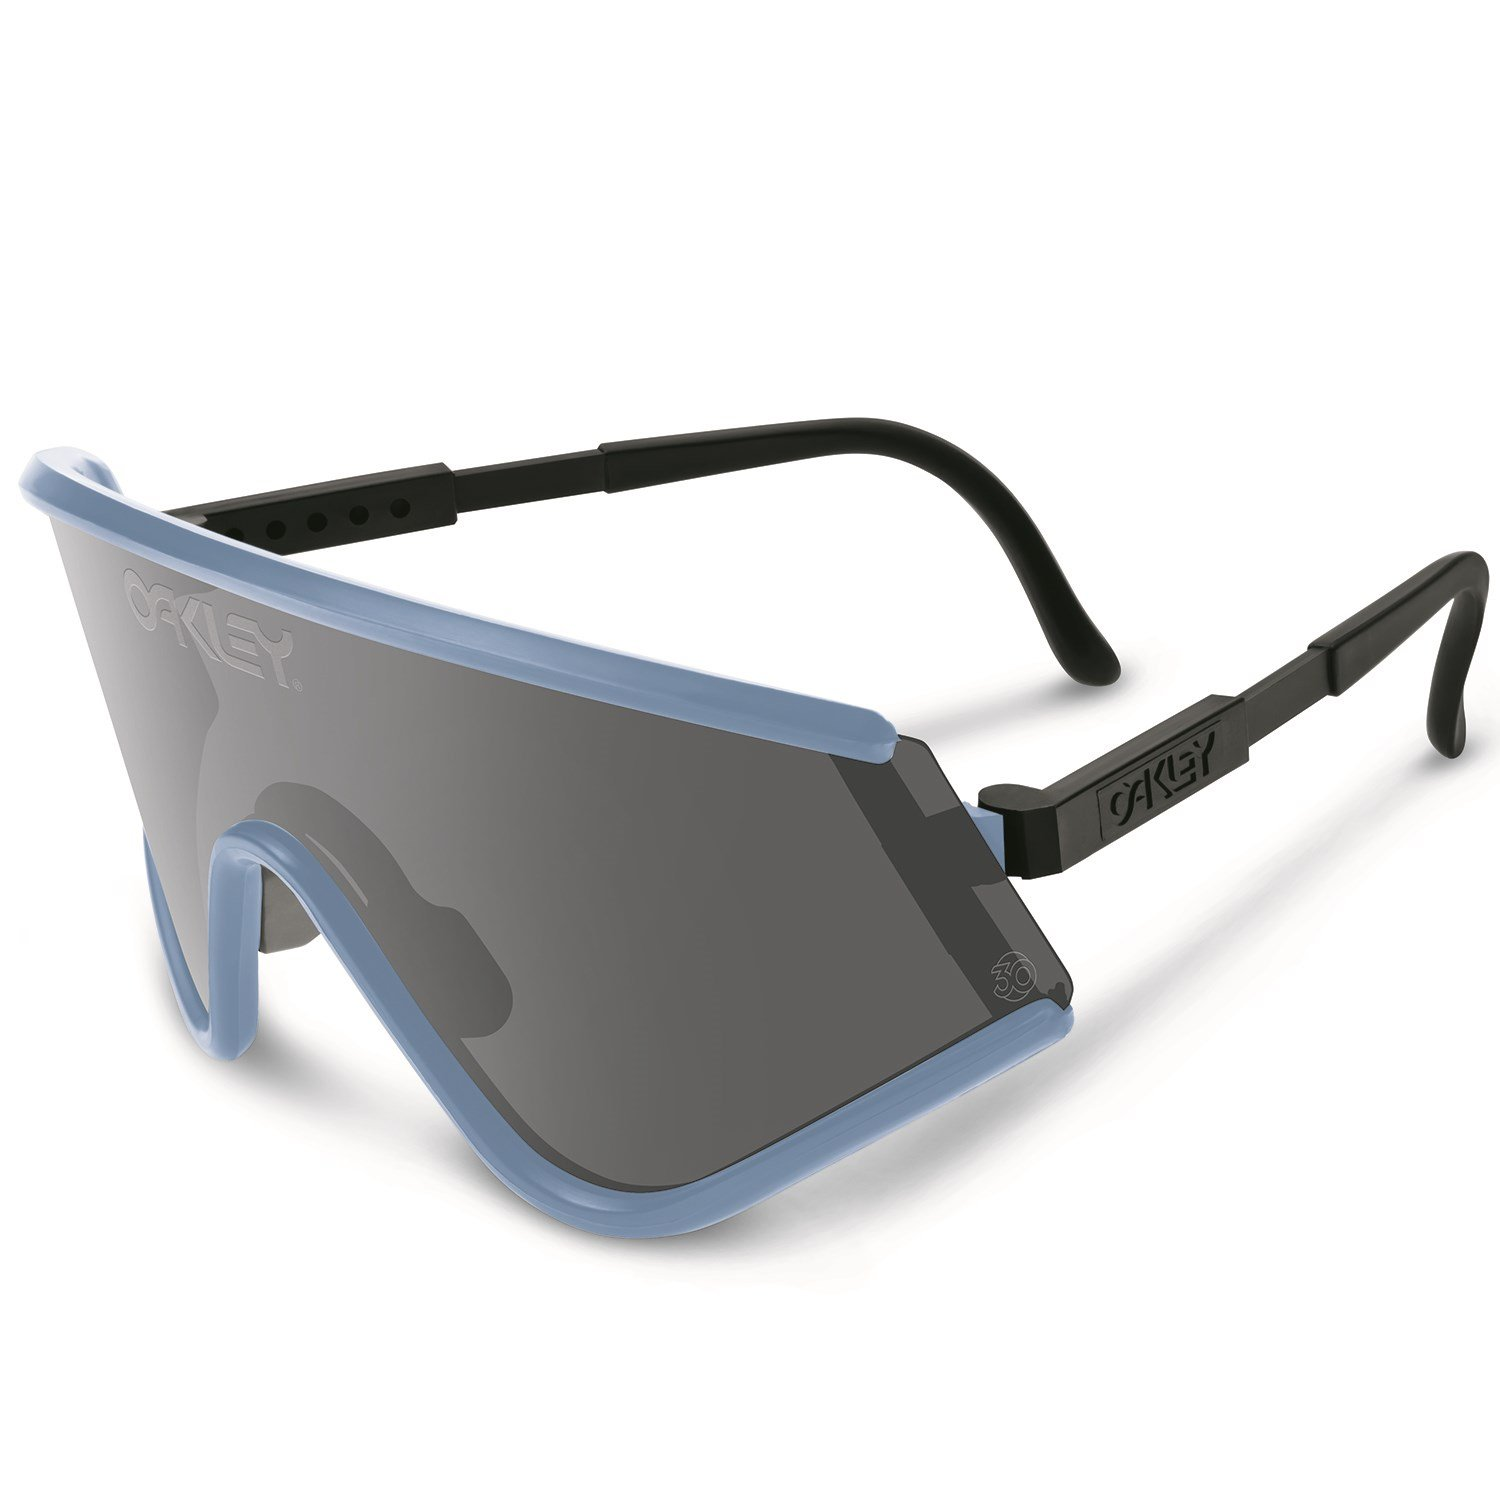 Z5ae5ibp0msepwz Latest Oakley Outlet